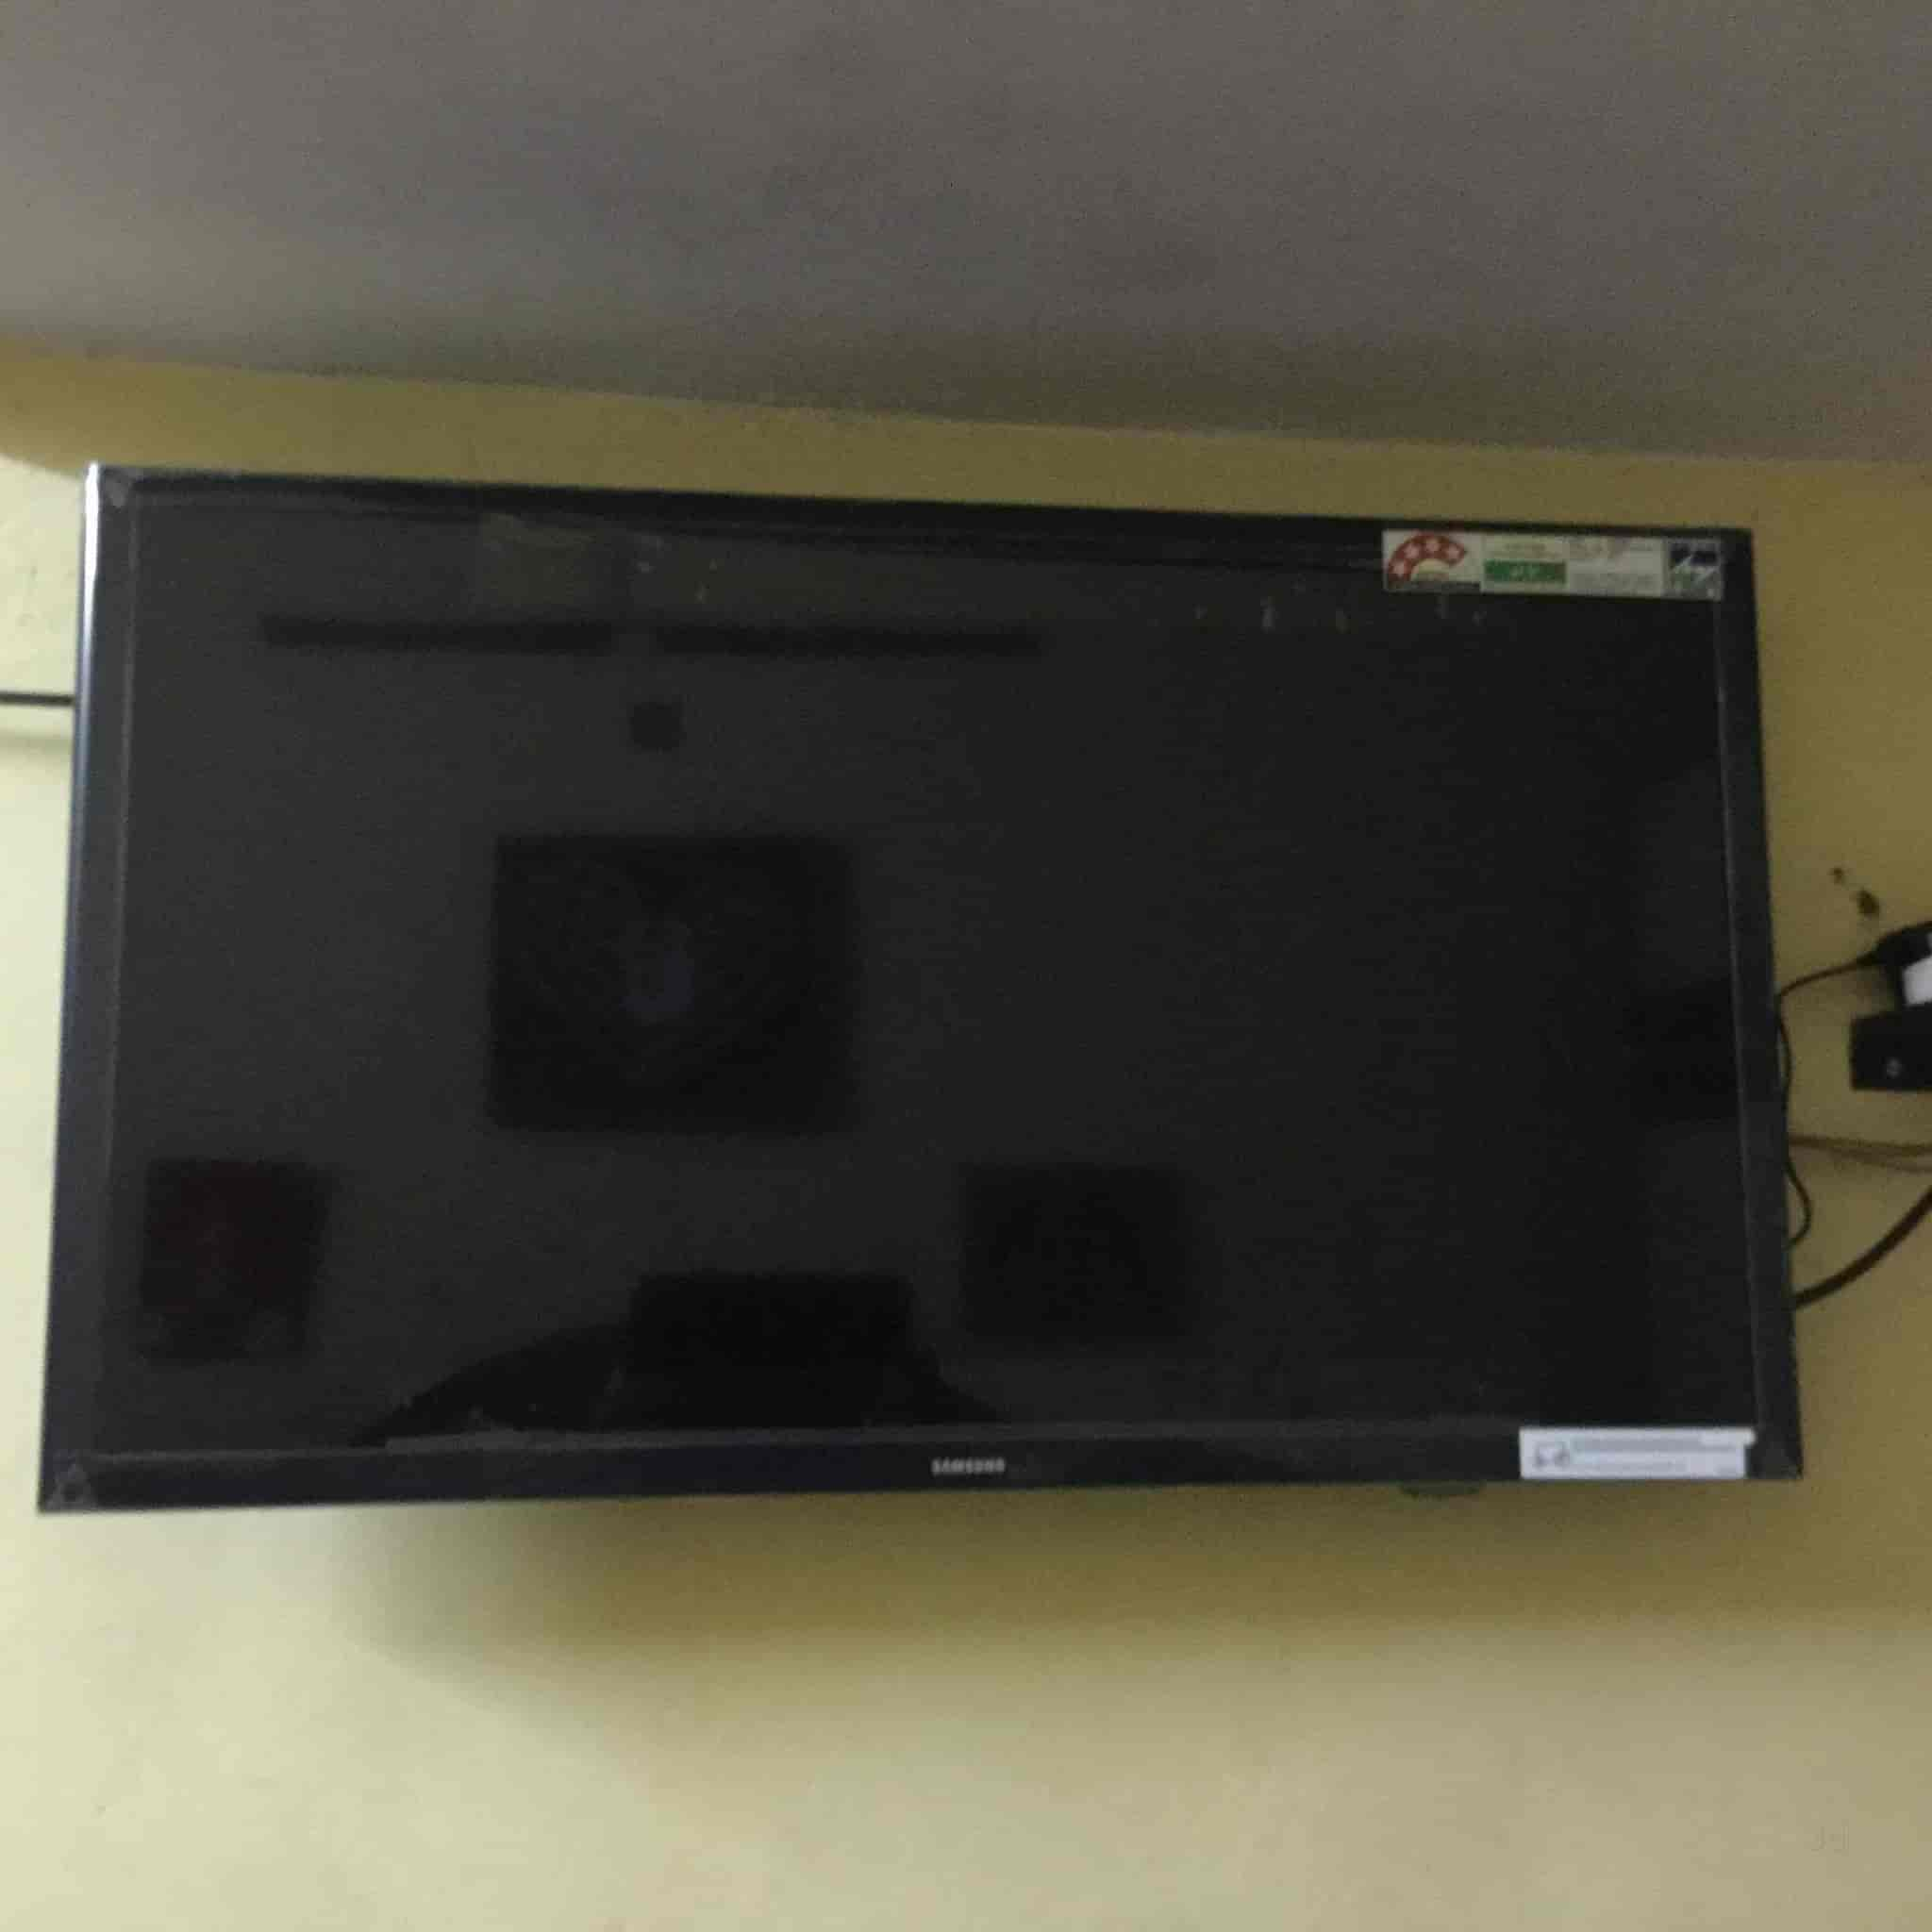 Top Tcl Lcd Tv Repair & Services in Bhangel - Best Tcl Lcd